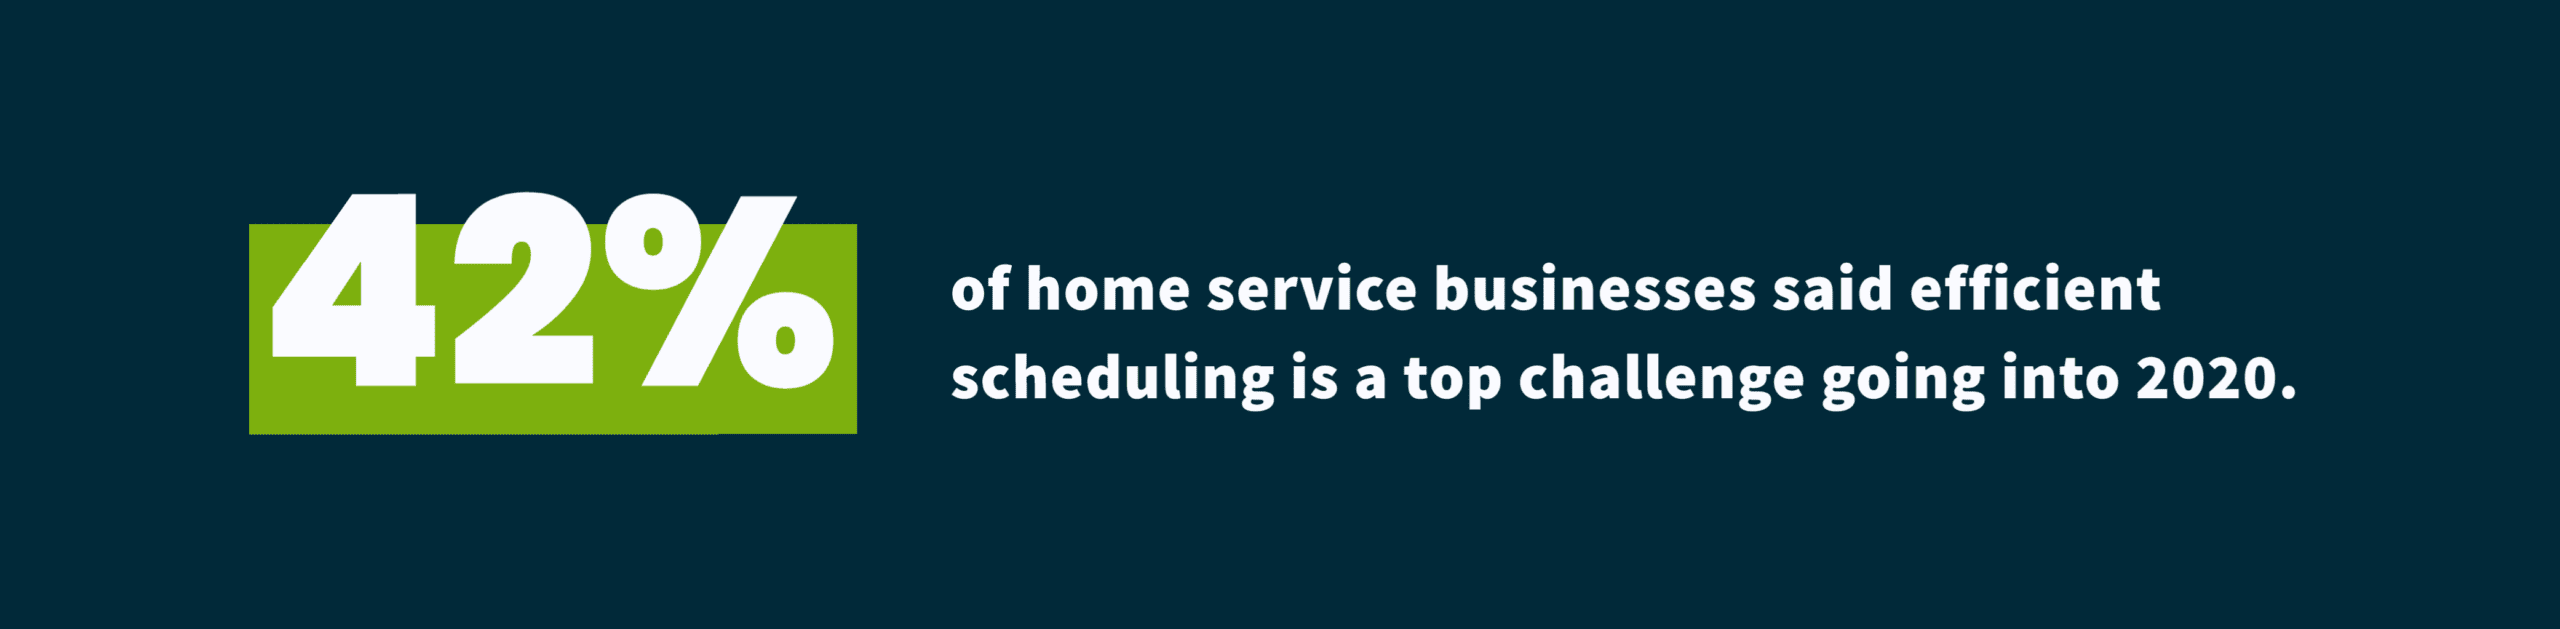 Home Service Industry Trends 2020 - Efficient Scheduling